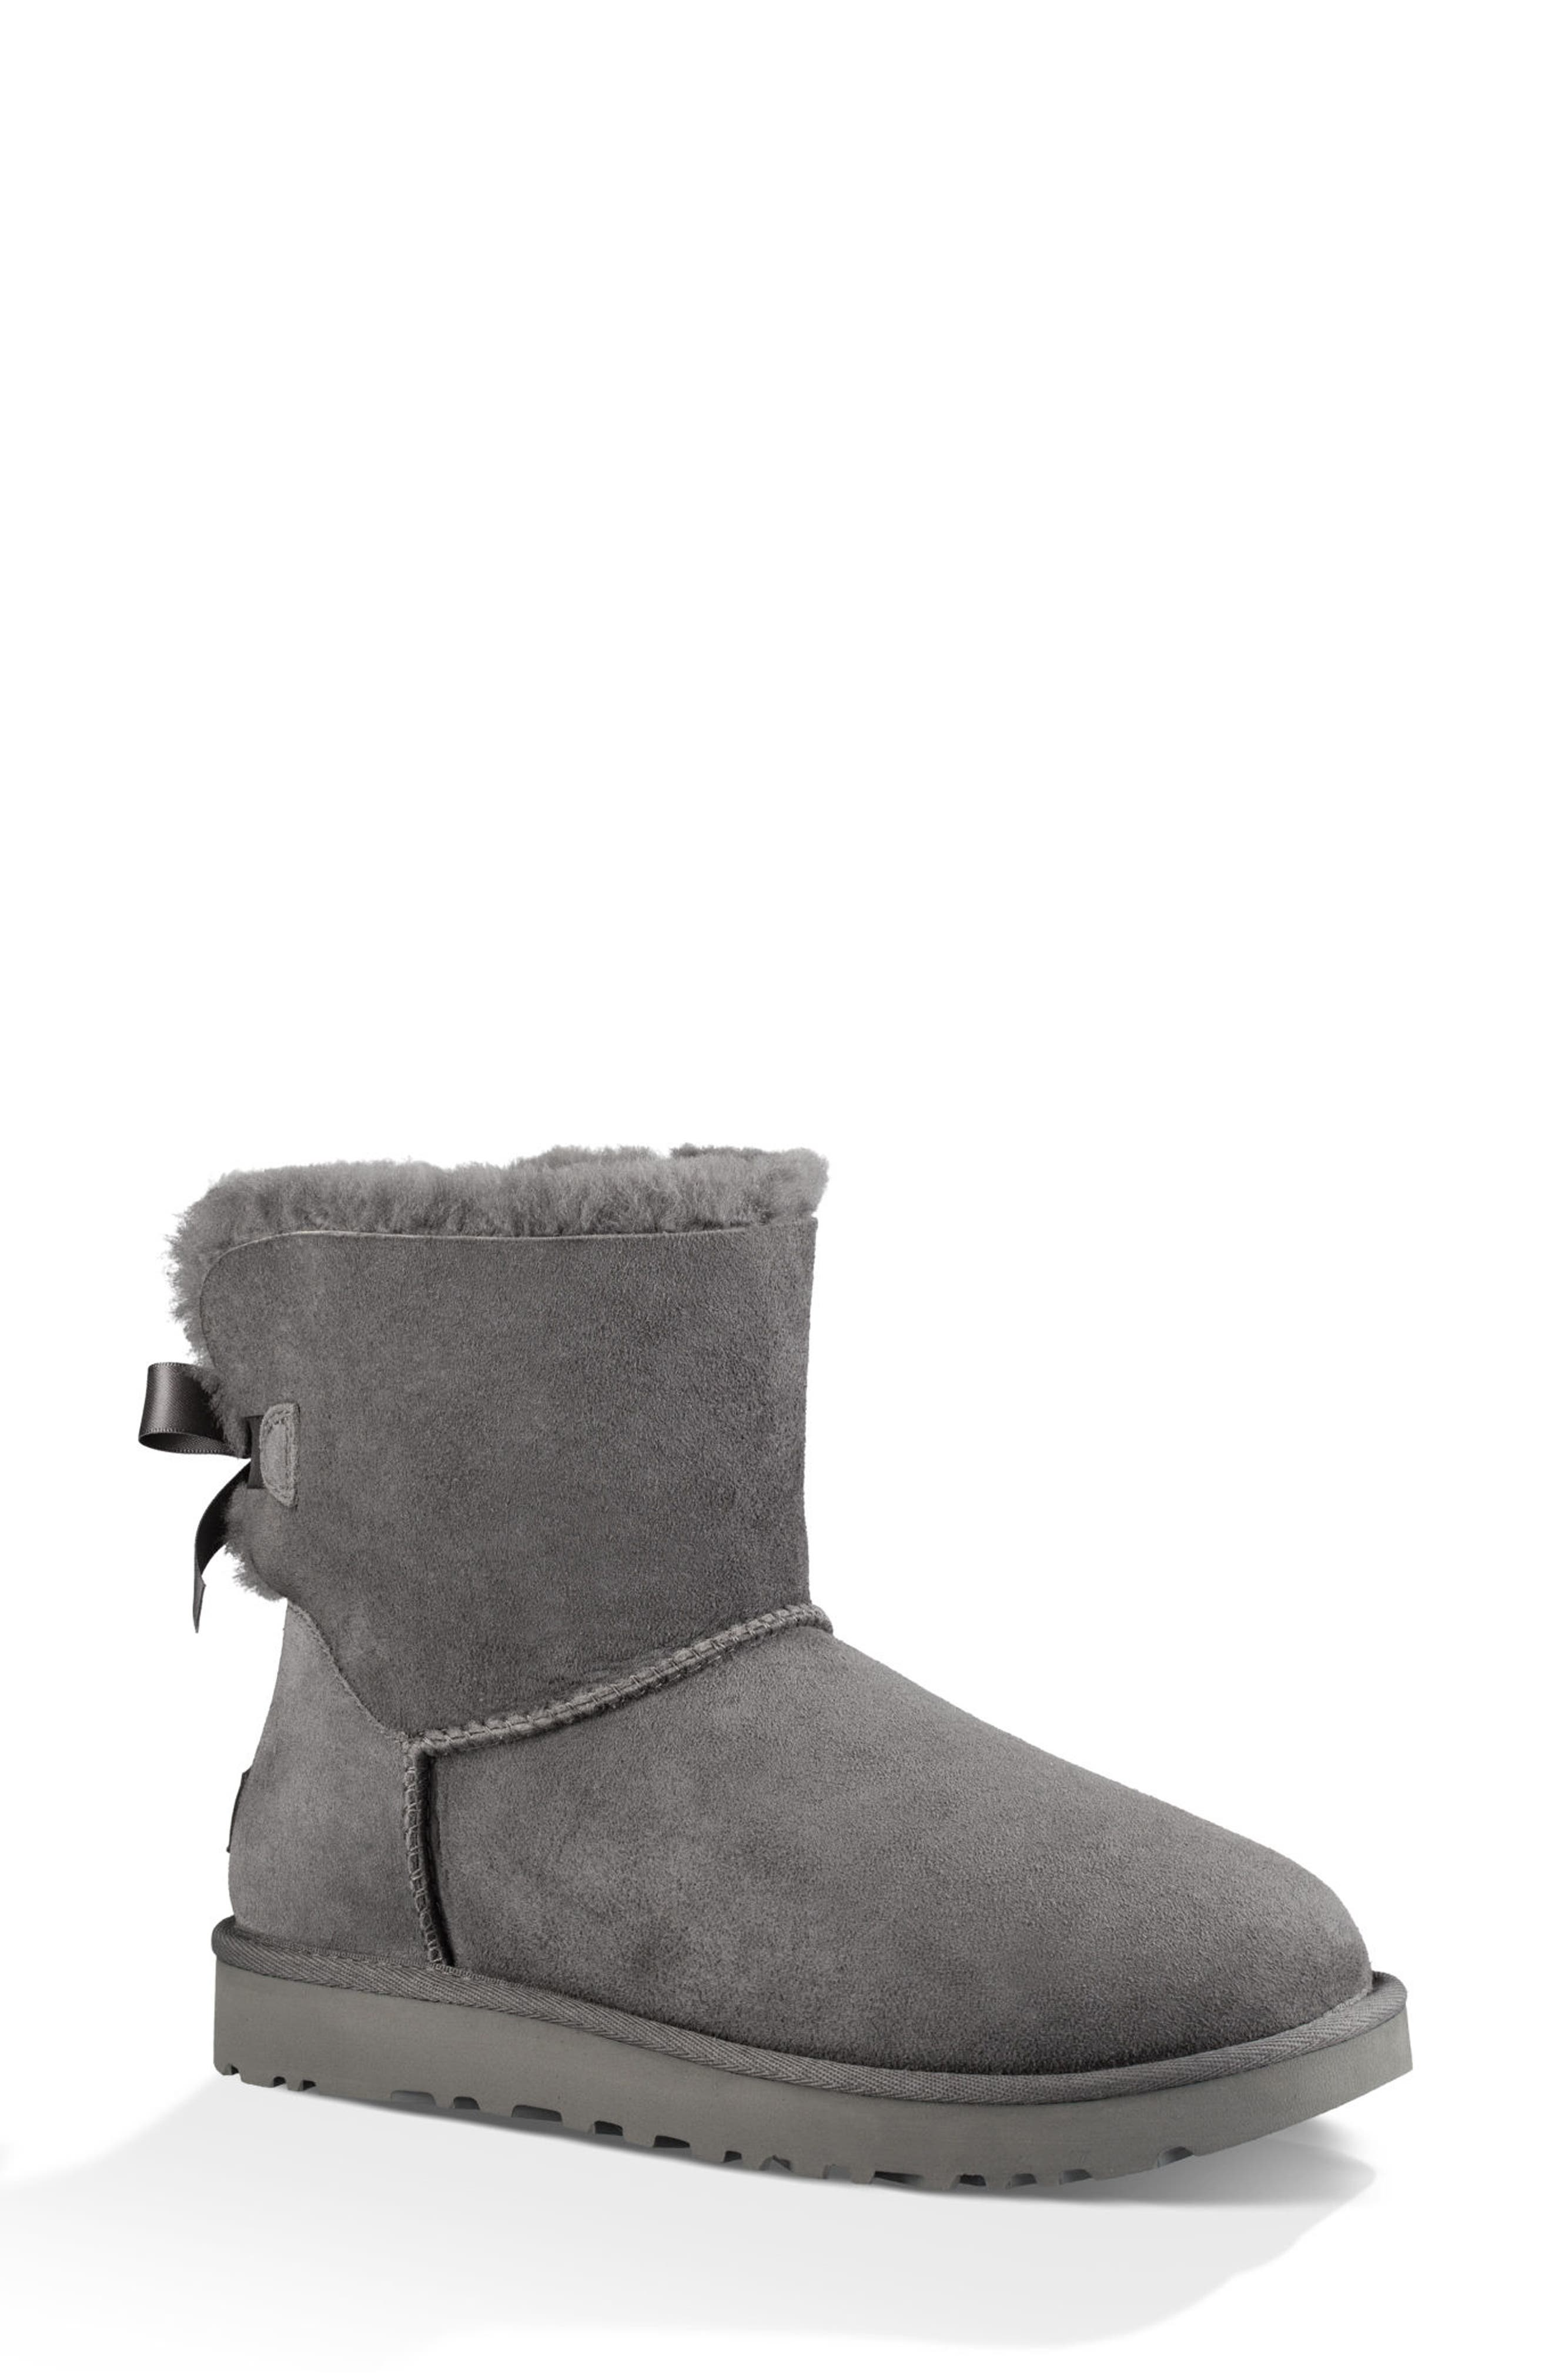 UGG<SUP>®</SUP>, Mini Bailey Bow II Genuine Shearling Bootie, Main thumbnail 1, color, GREY SUEDE